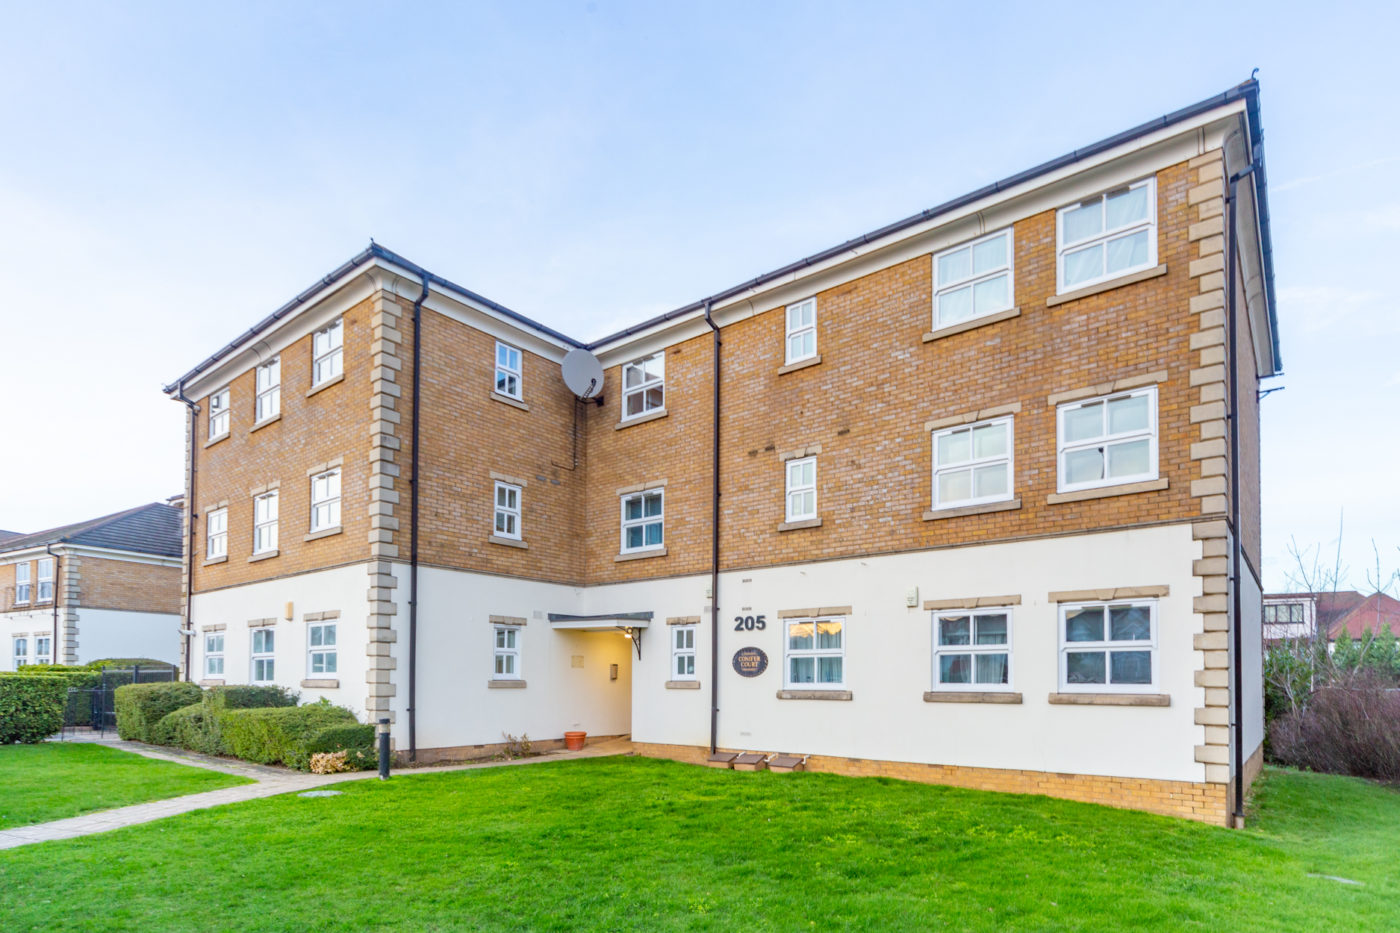 Conifer Court, 205 Great North Way, Hendon, NW4